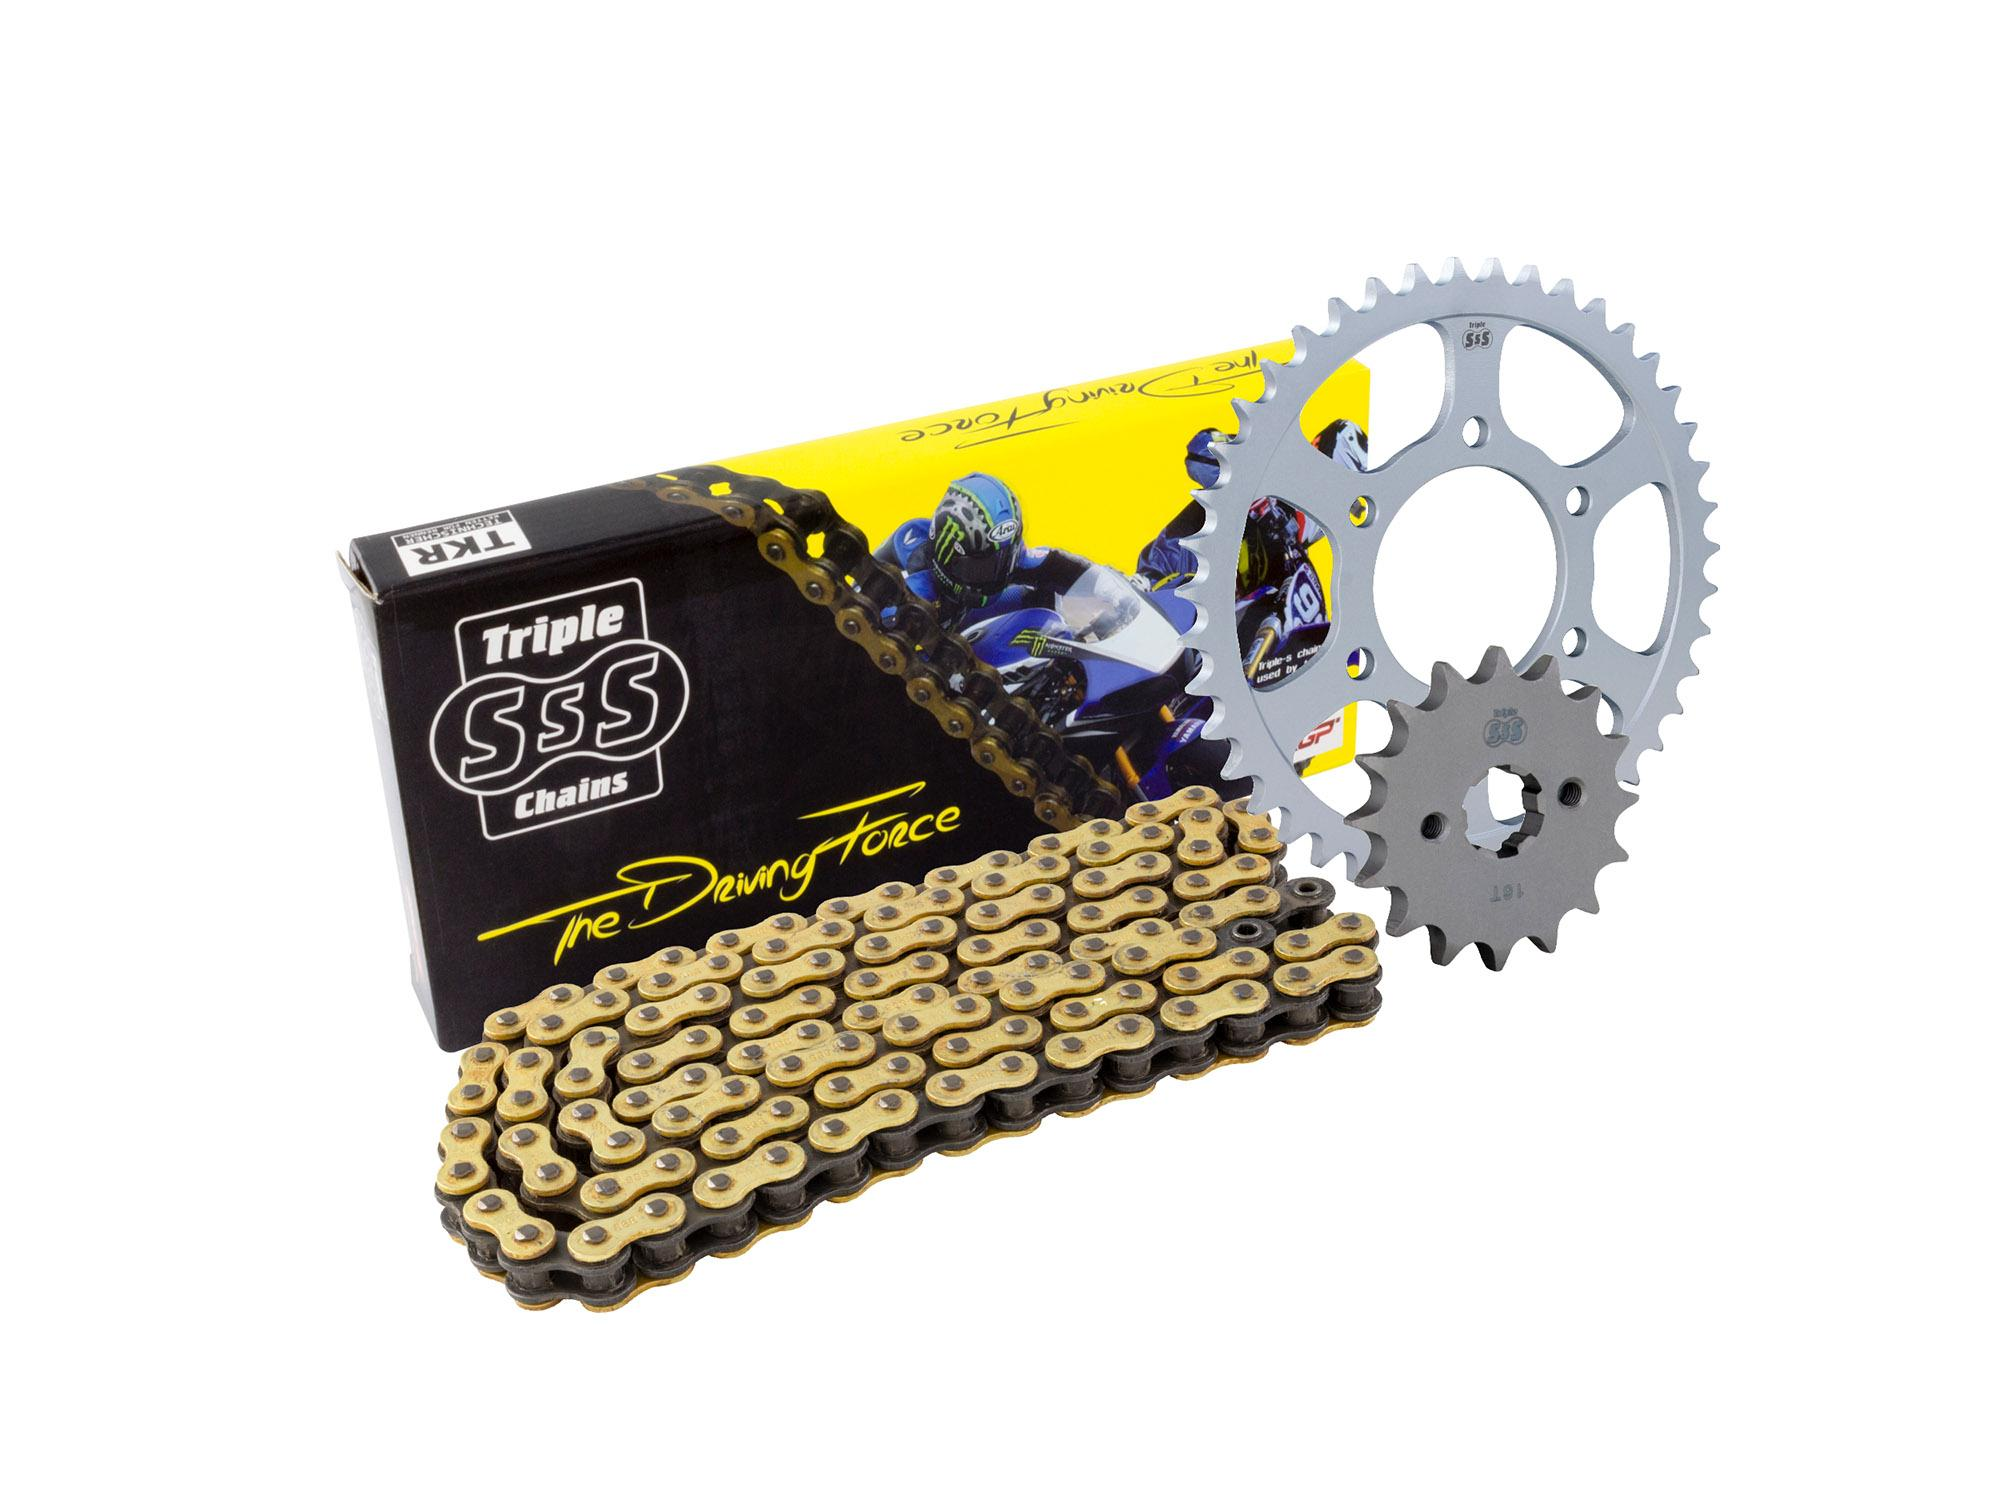 Honda CBR600 RR-7/8/9/A, CBR C-ABS RA-A Chain & Sprocket Kit: 16T Front, 45T Rear, HD O-Ring Gold Chain 525H 112Link